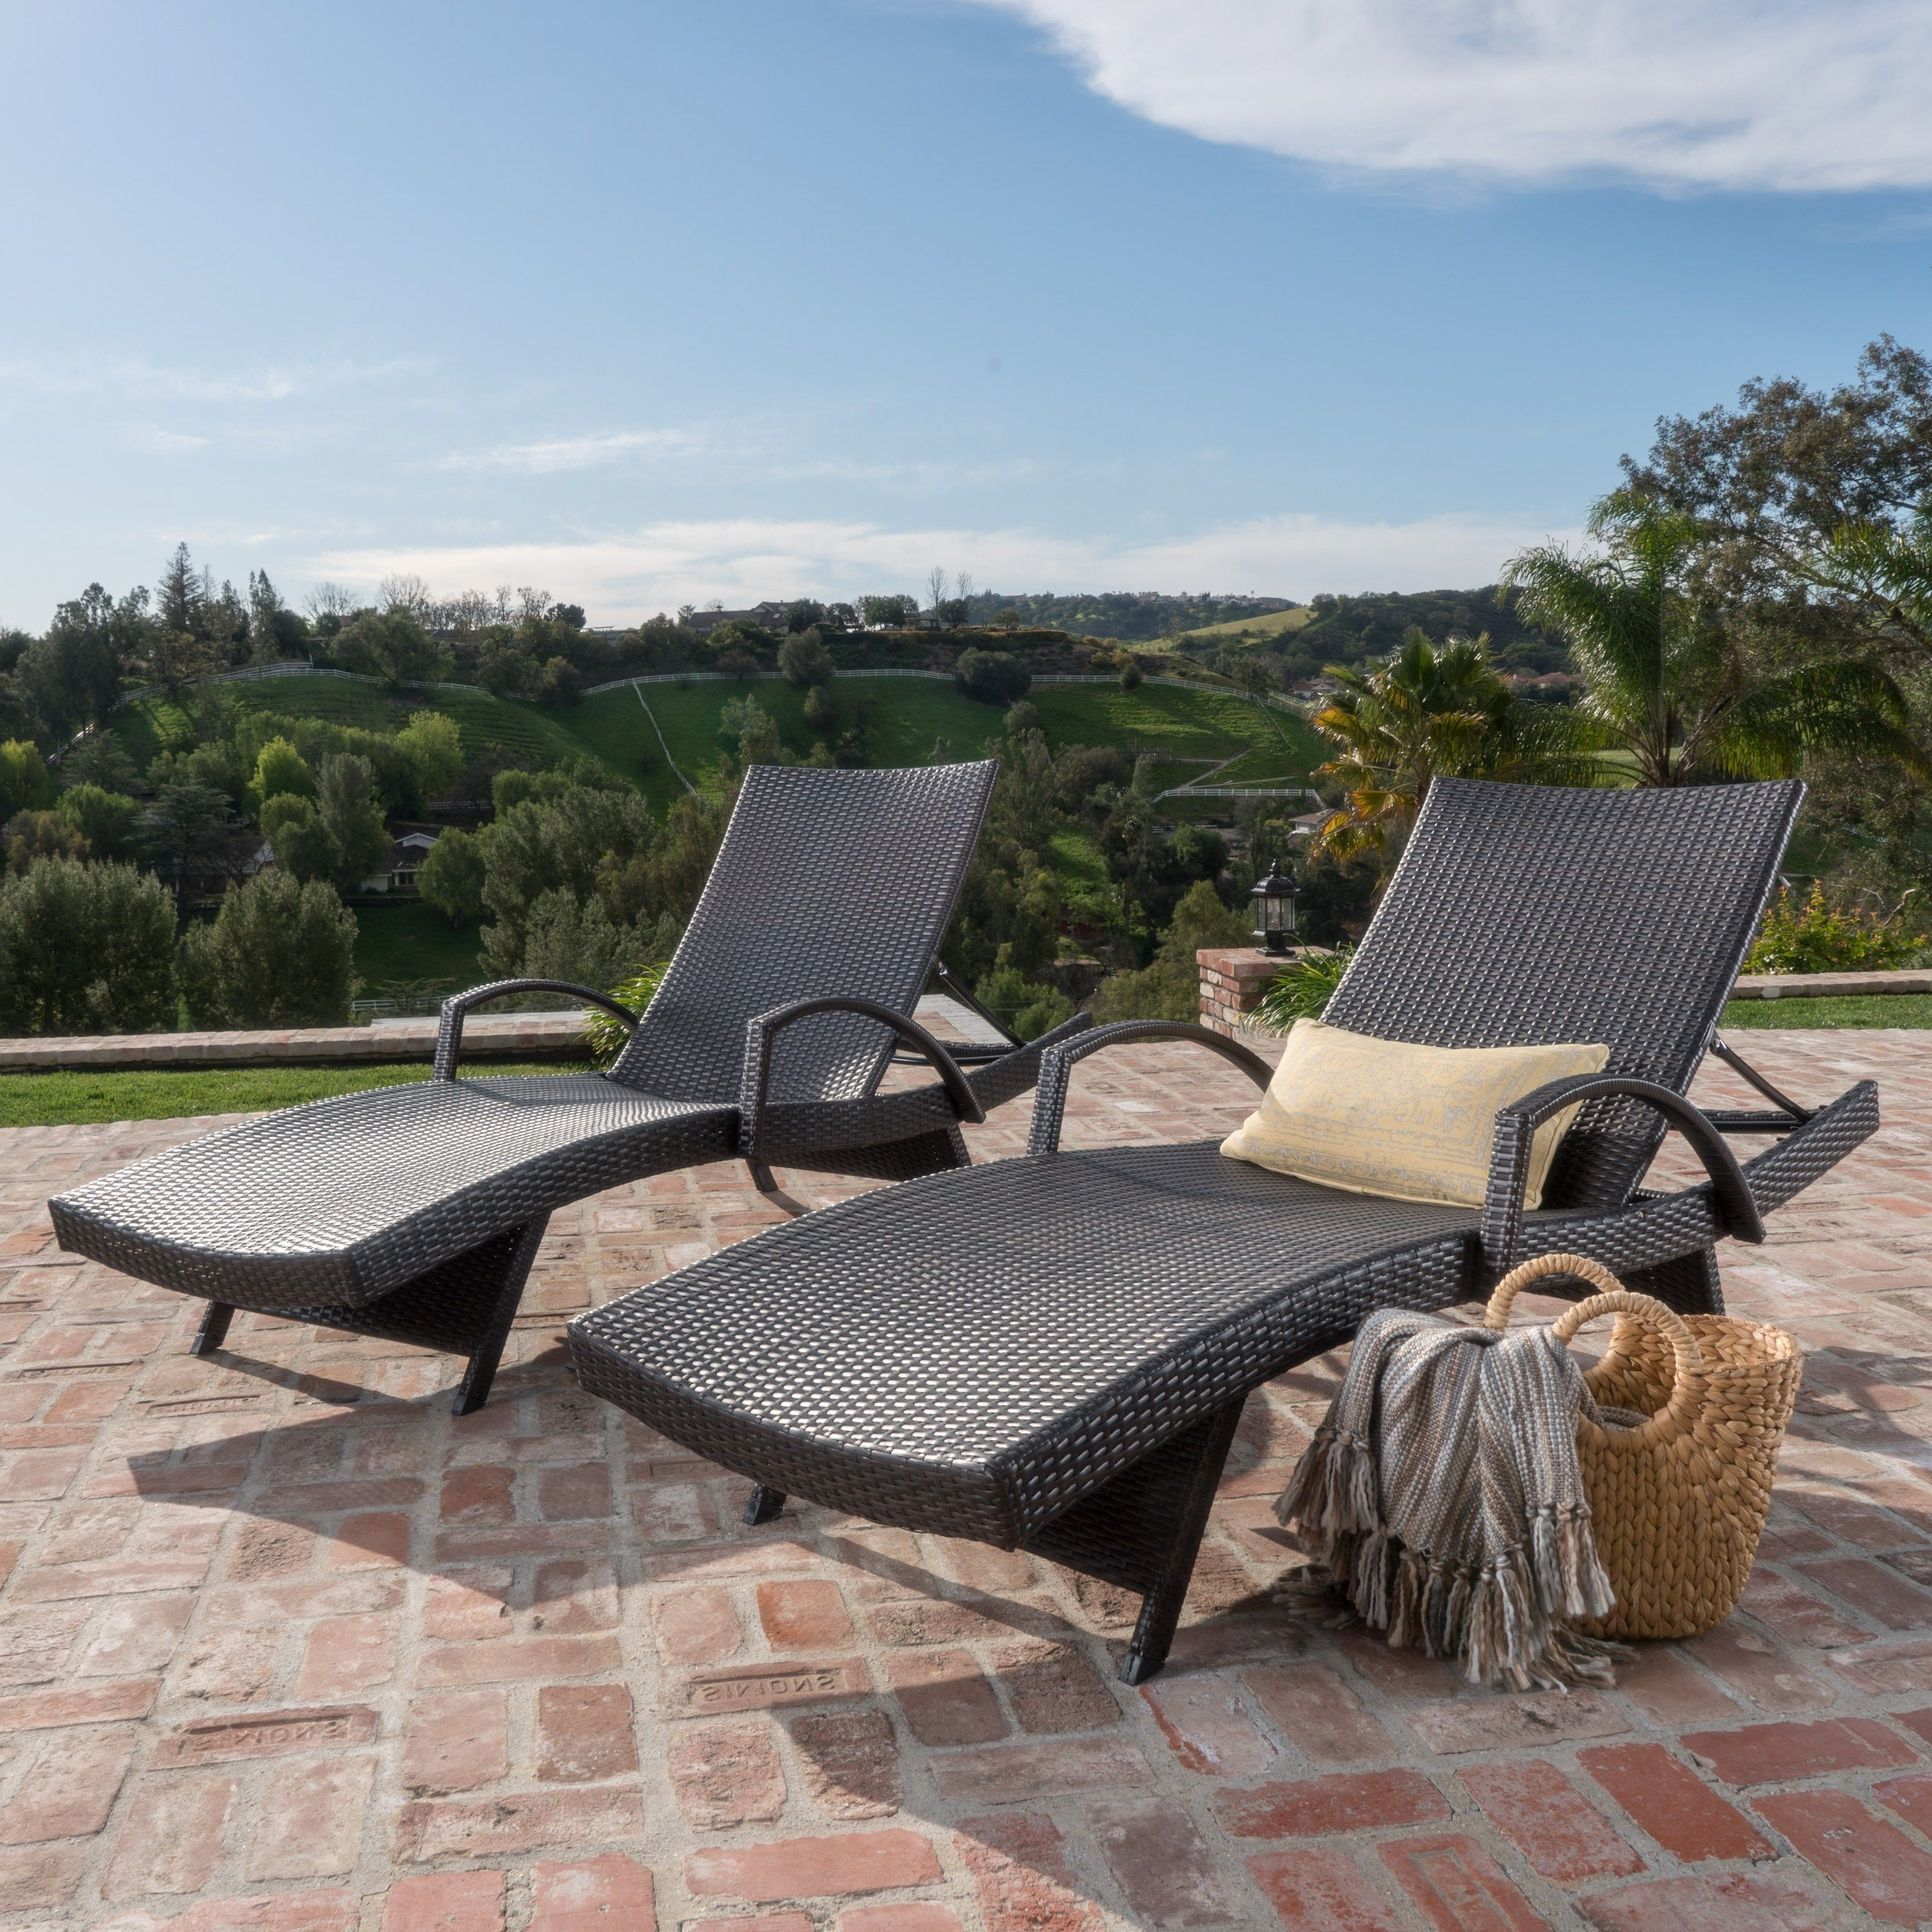 Outdoor Wicker Chaise Lounge Chairs Regarding Fashionable Toscana Outdoor Wicker Armed Chaise Lounge Chair (set Of 2)christopher Knight Home (View 9 of 25)